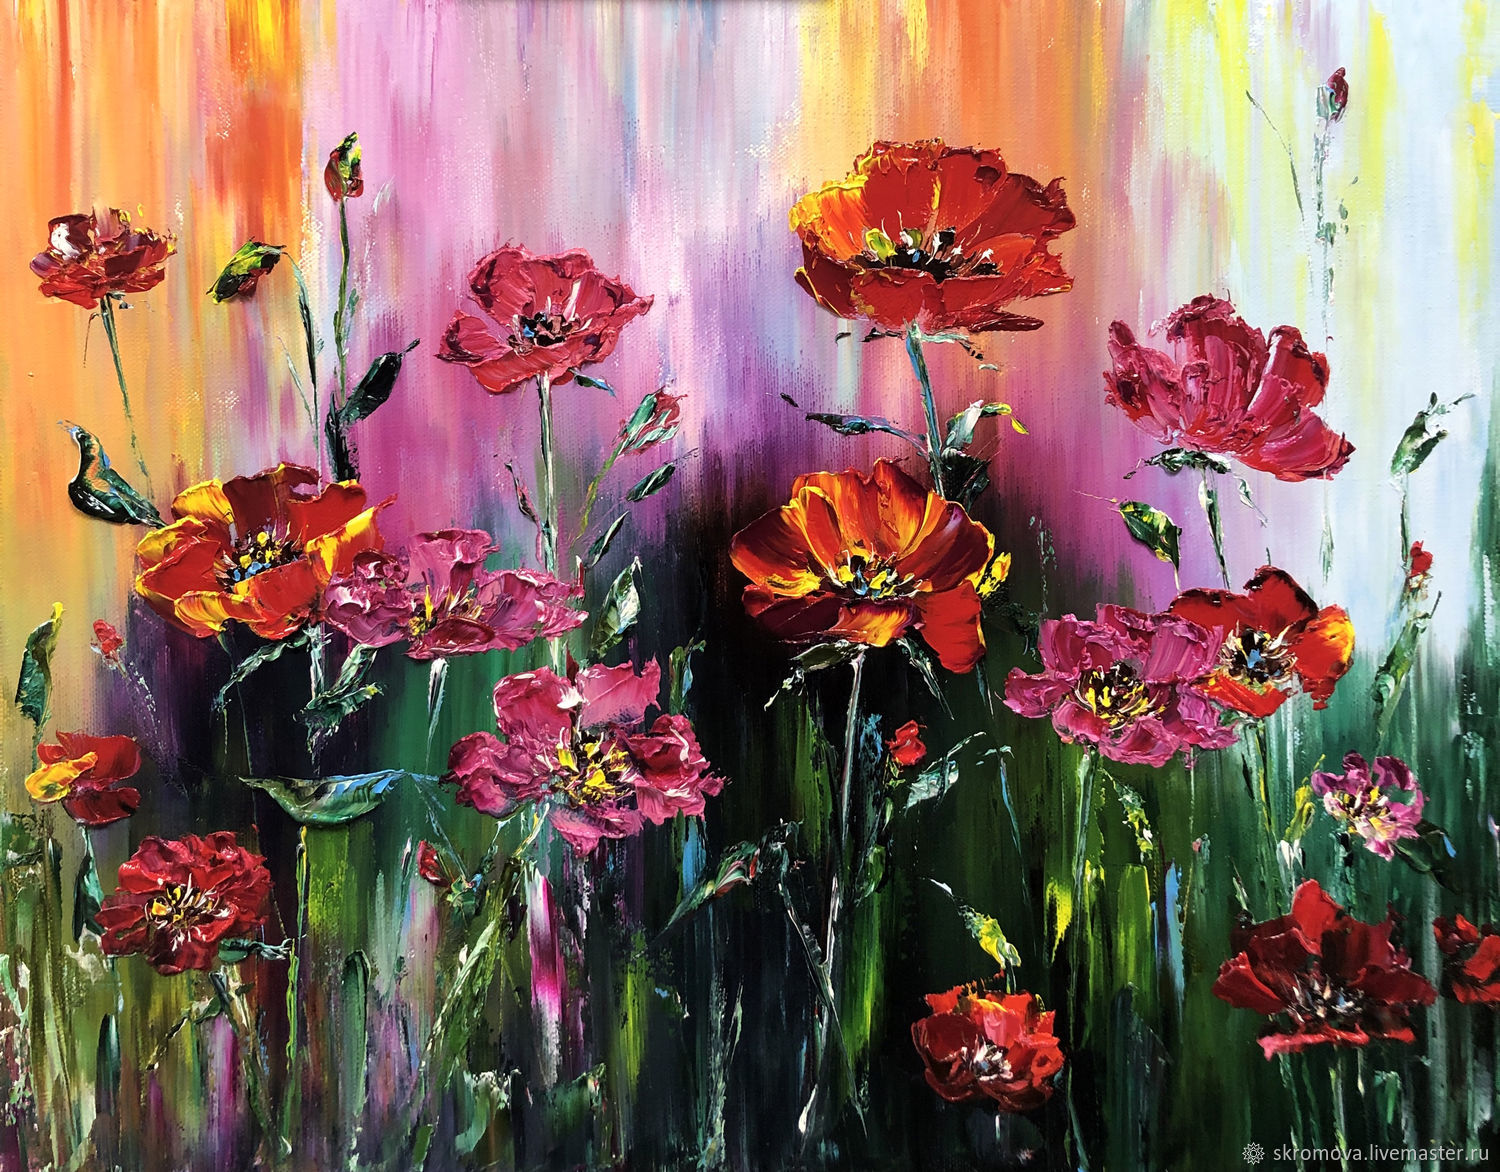 Oil painting with red poppies, Pictures, Moscow,  Фото №1